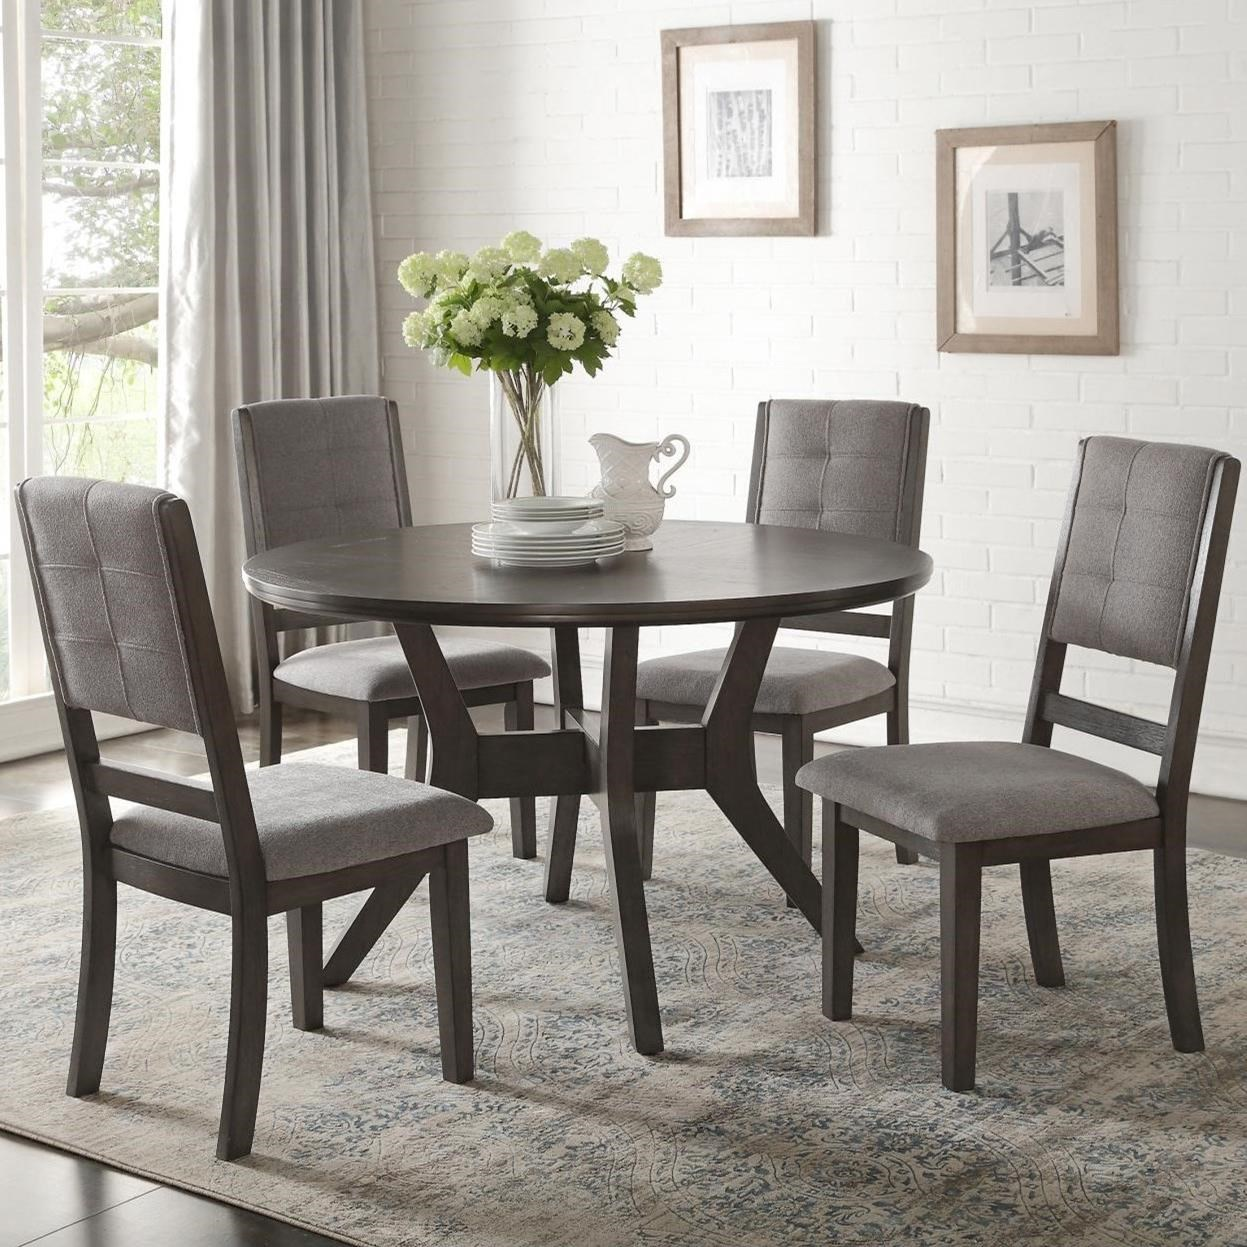 Standard Furniture Cosmo 5 Piece Round Coffee Table Set W: Homelegance Nisky Transitional Five Piece Chair And Table